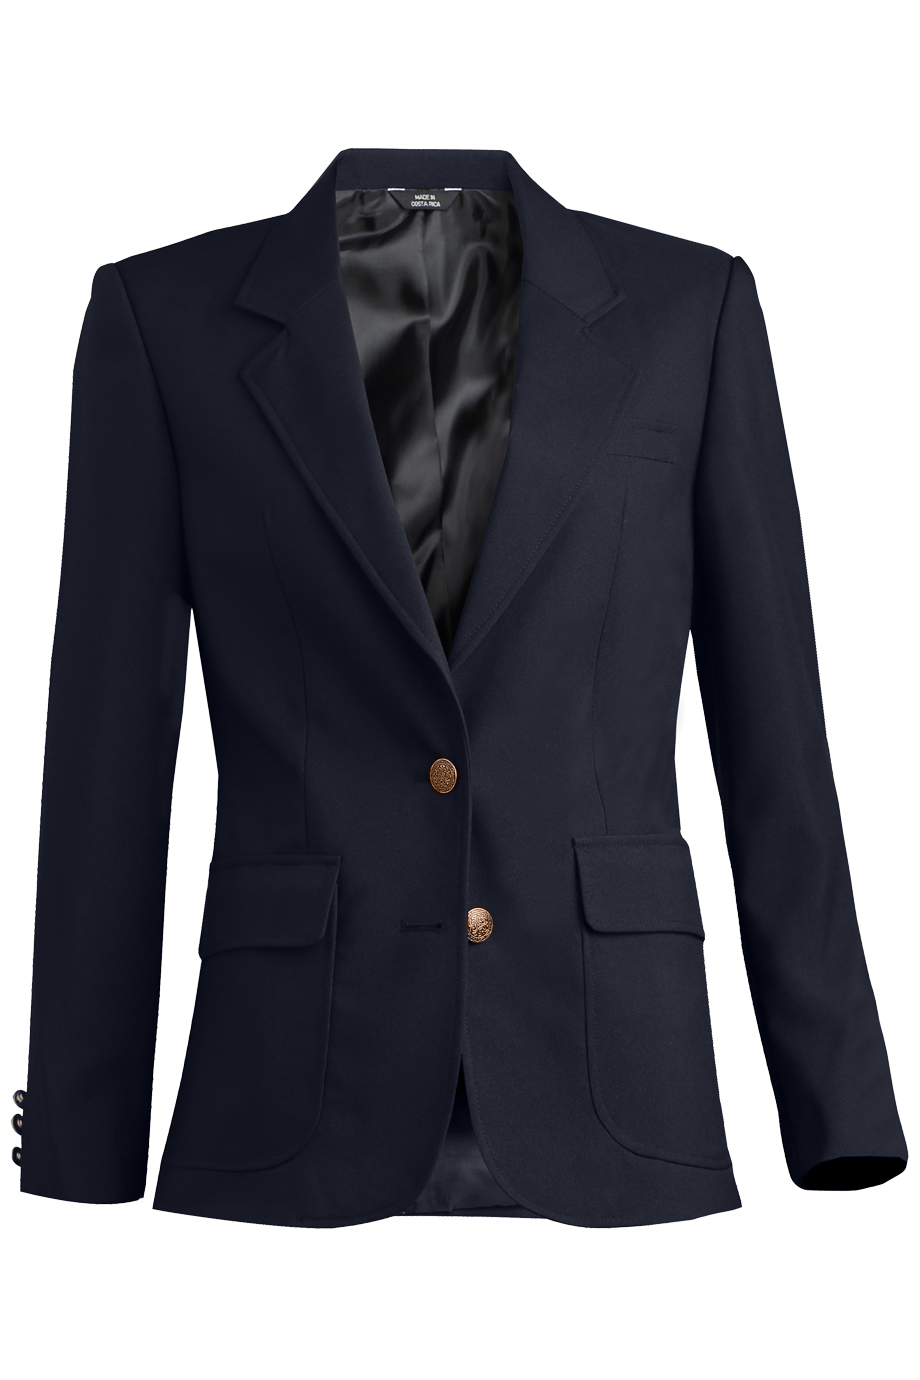 Edwards Ladies Single-Breasted Blazer-Edwards